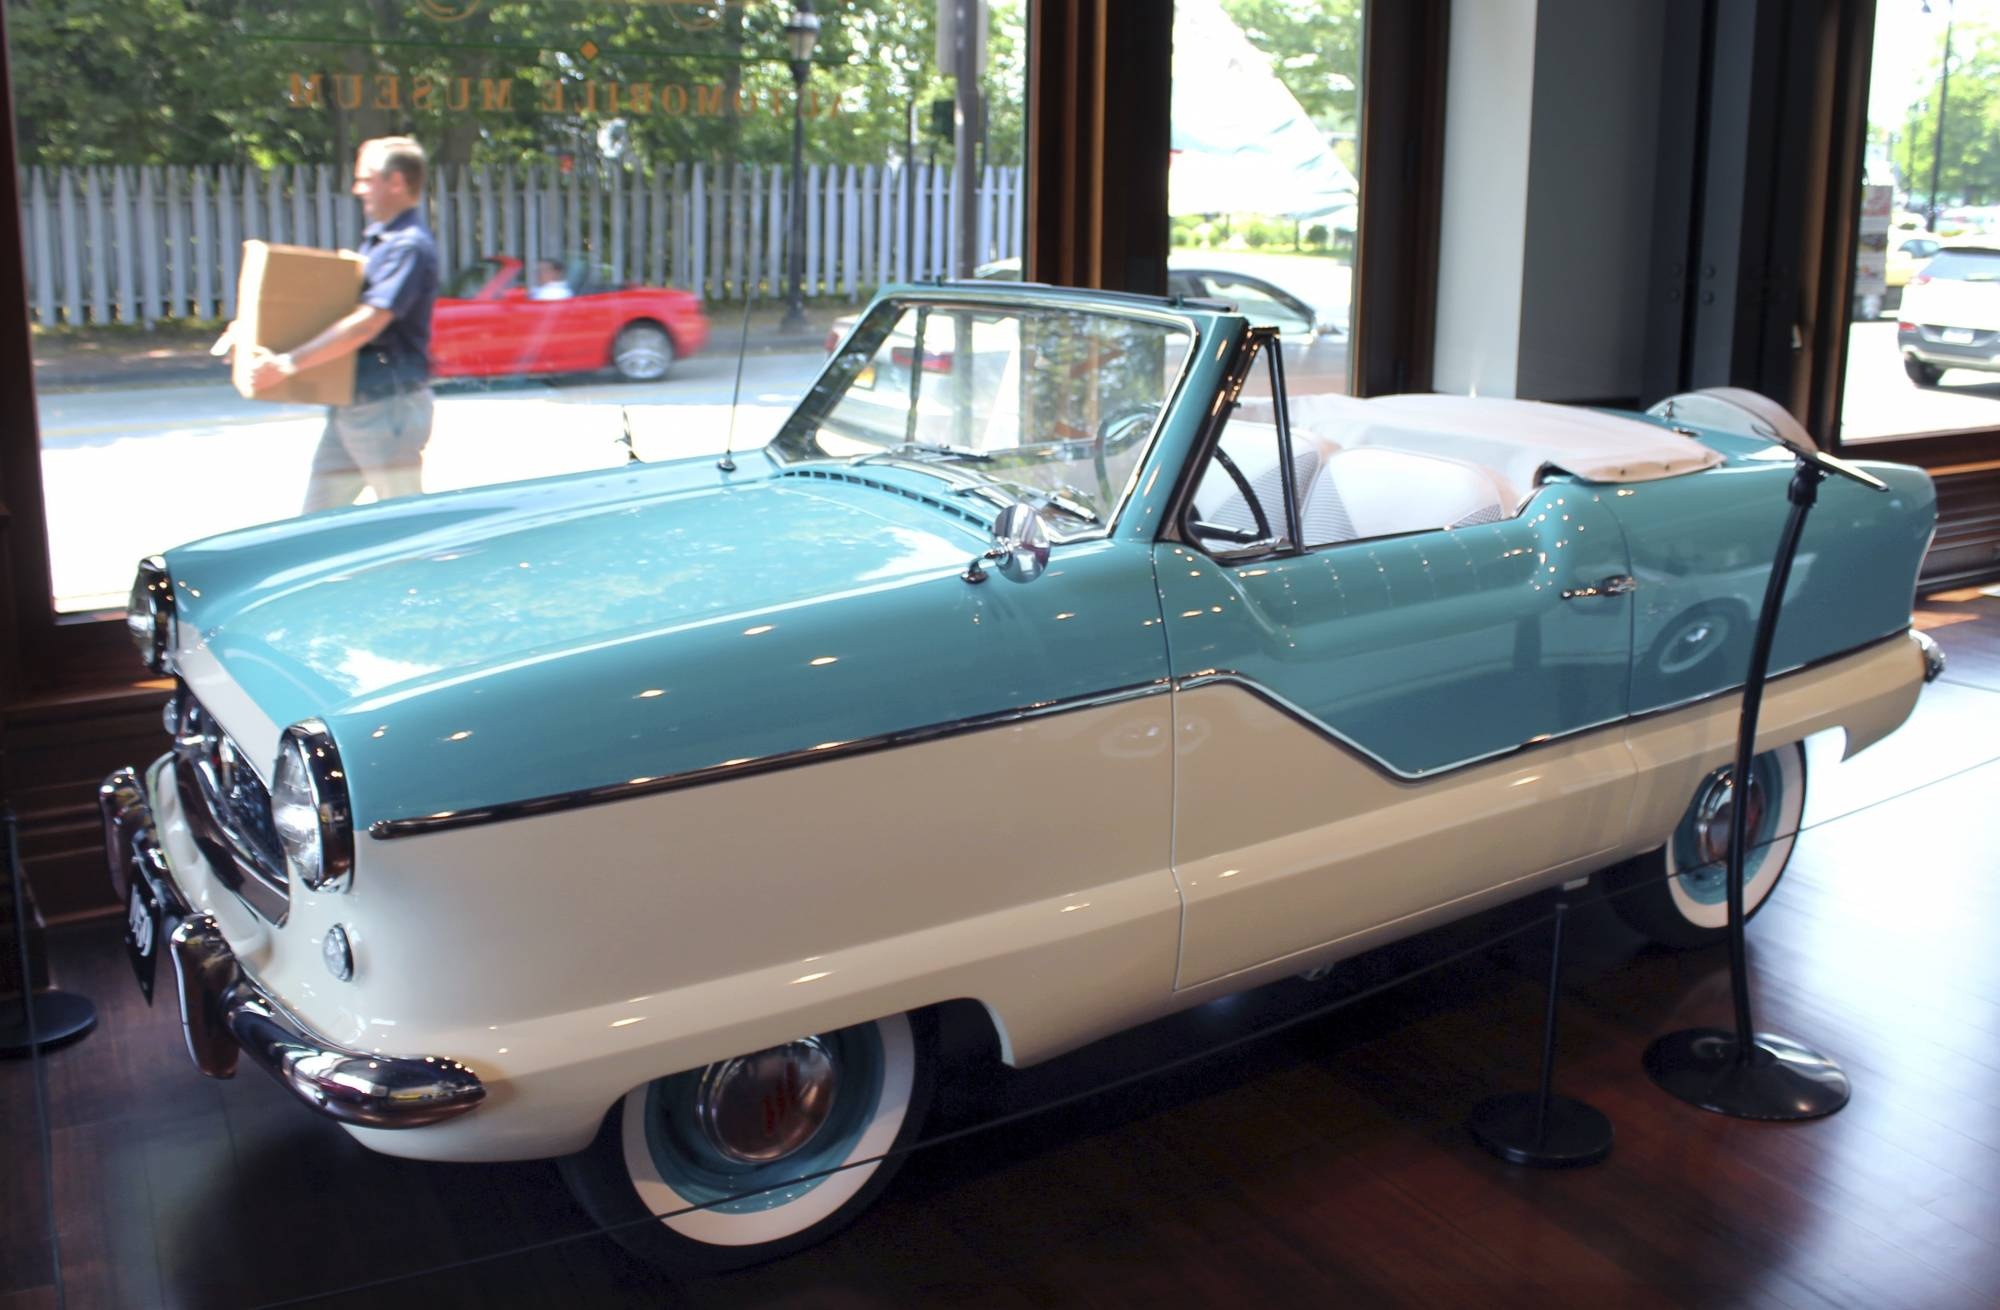 Car lovers\' Newport: 2 museums highlight design on wheels | WTOP